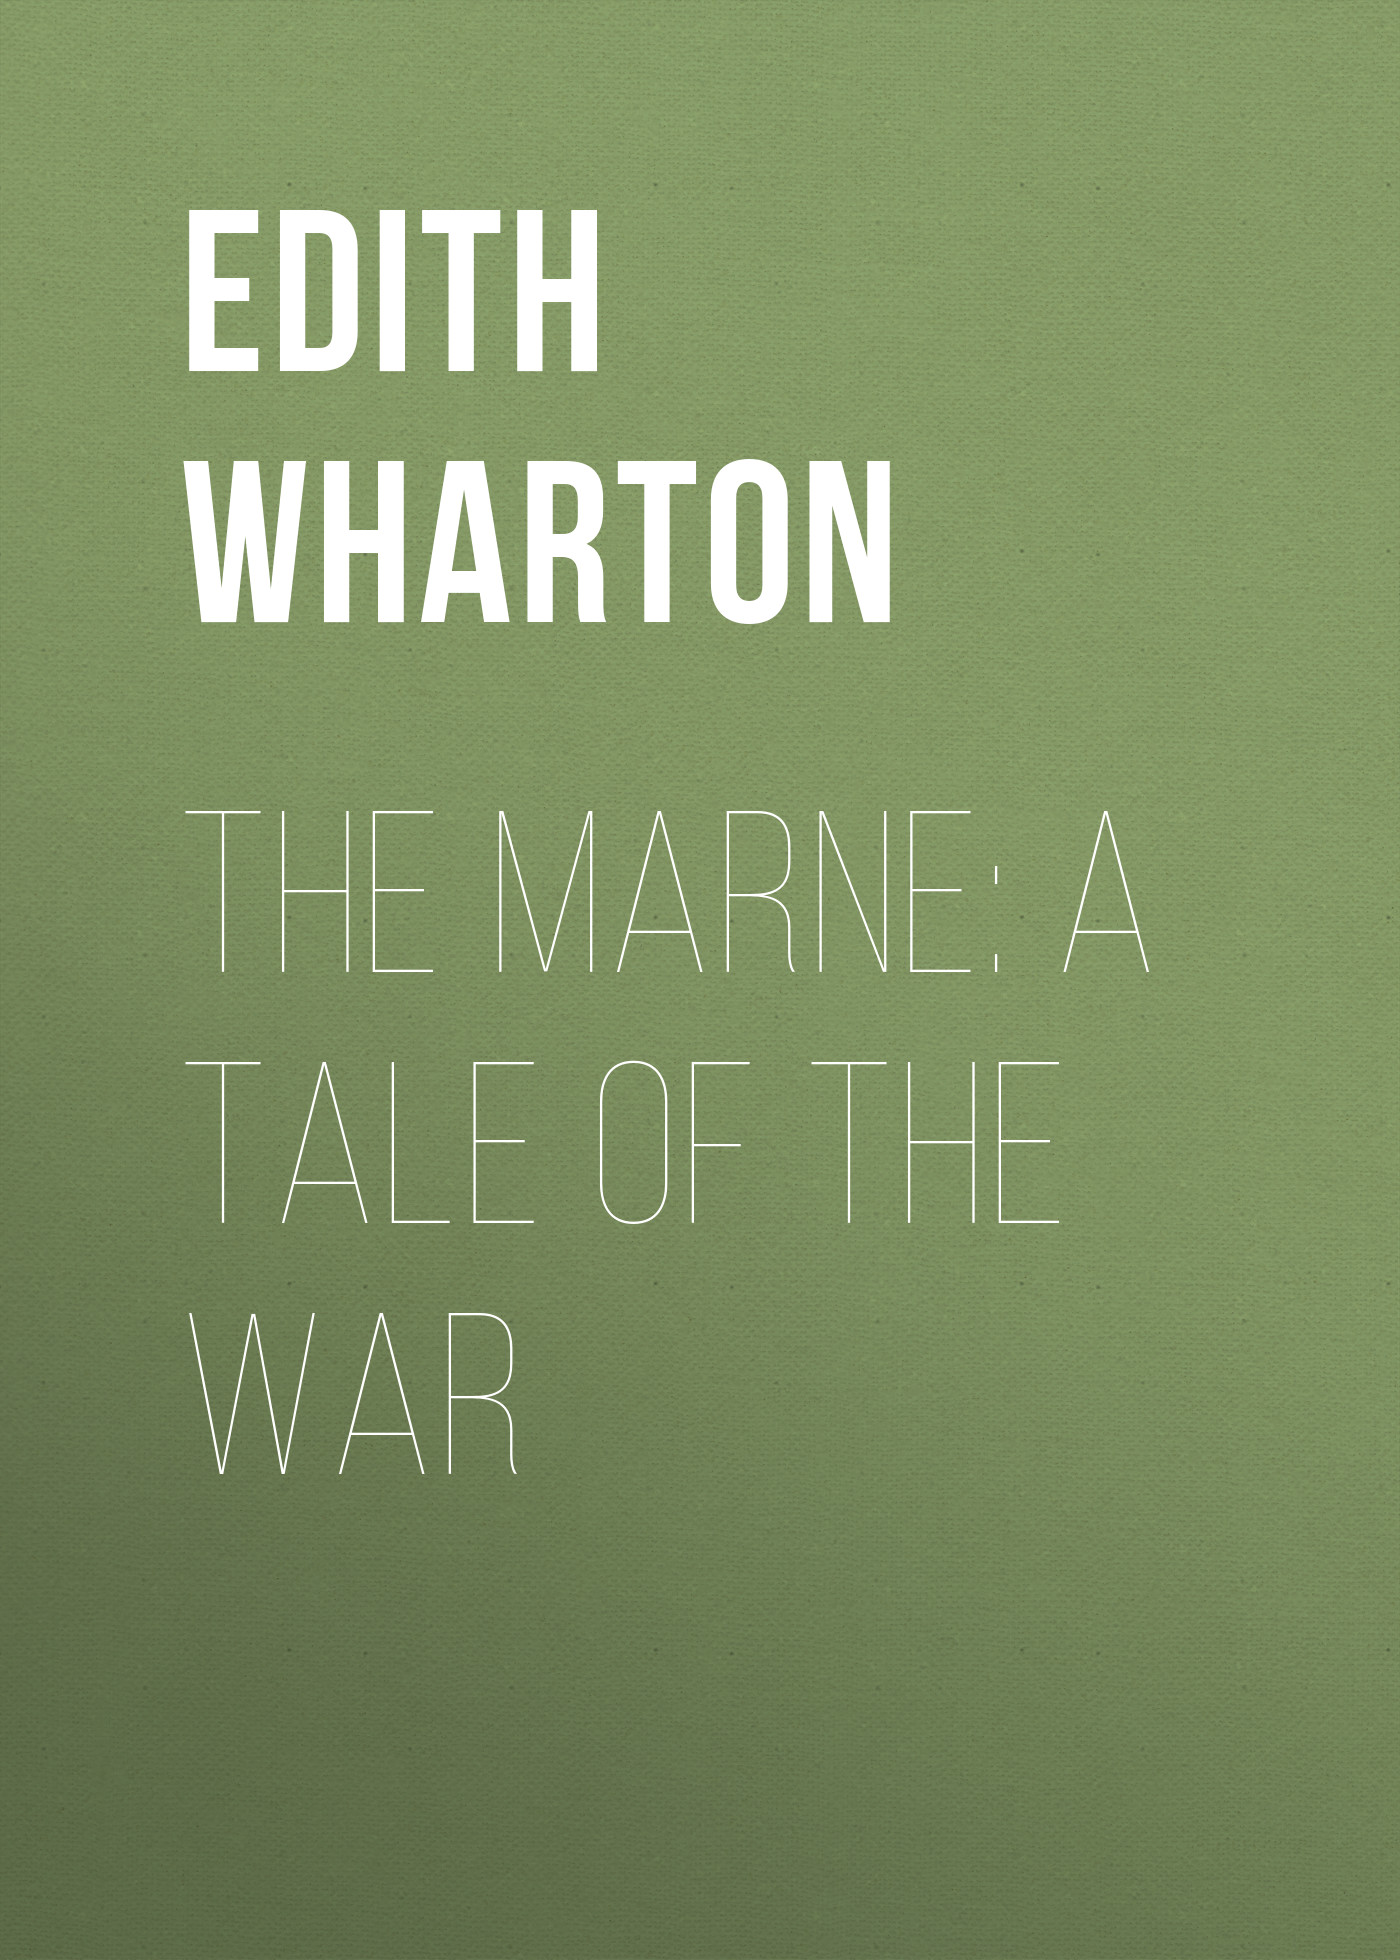 Edith Wharton The Marne: A Tale of the War edith wharton sous la neige